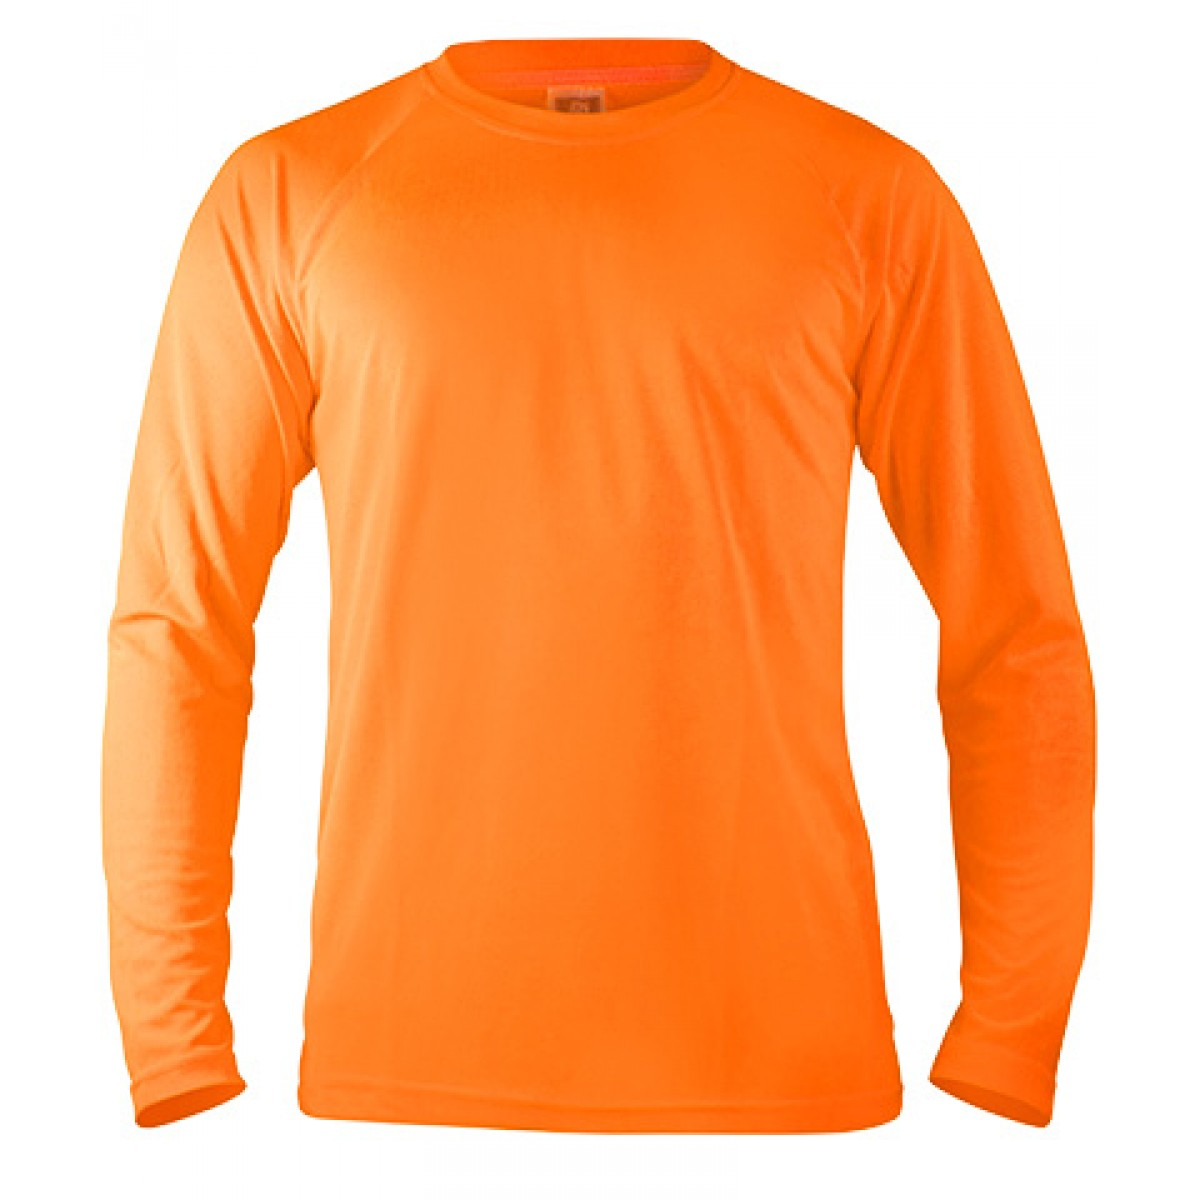 Long Sleeve Performance -Safety Orange-YS